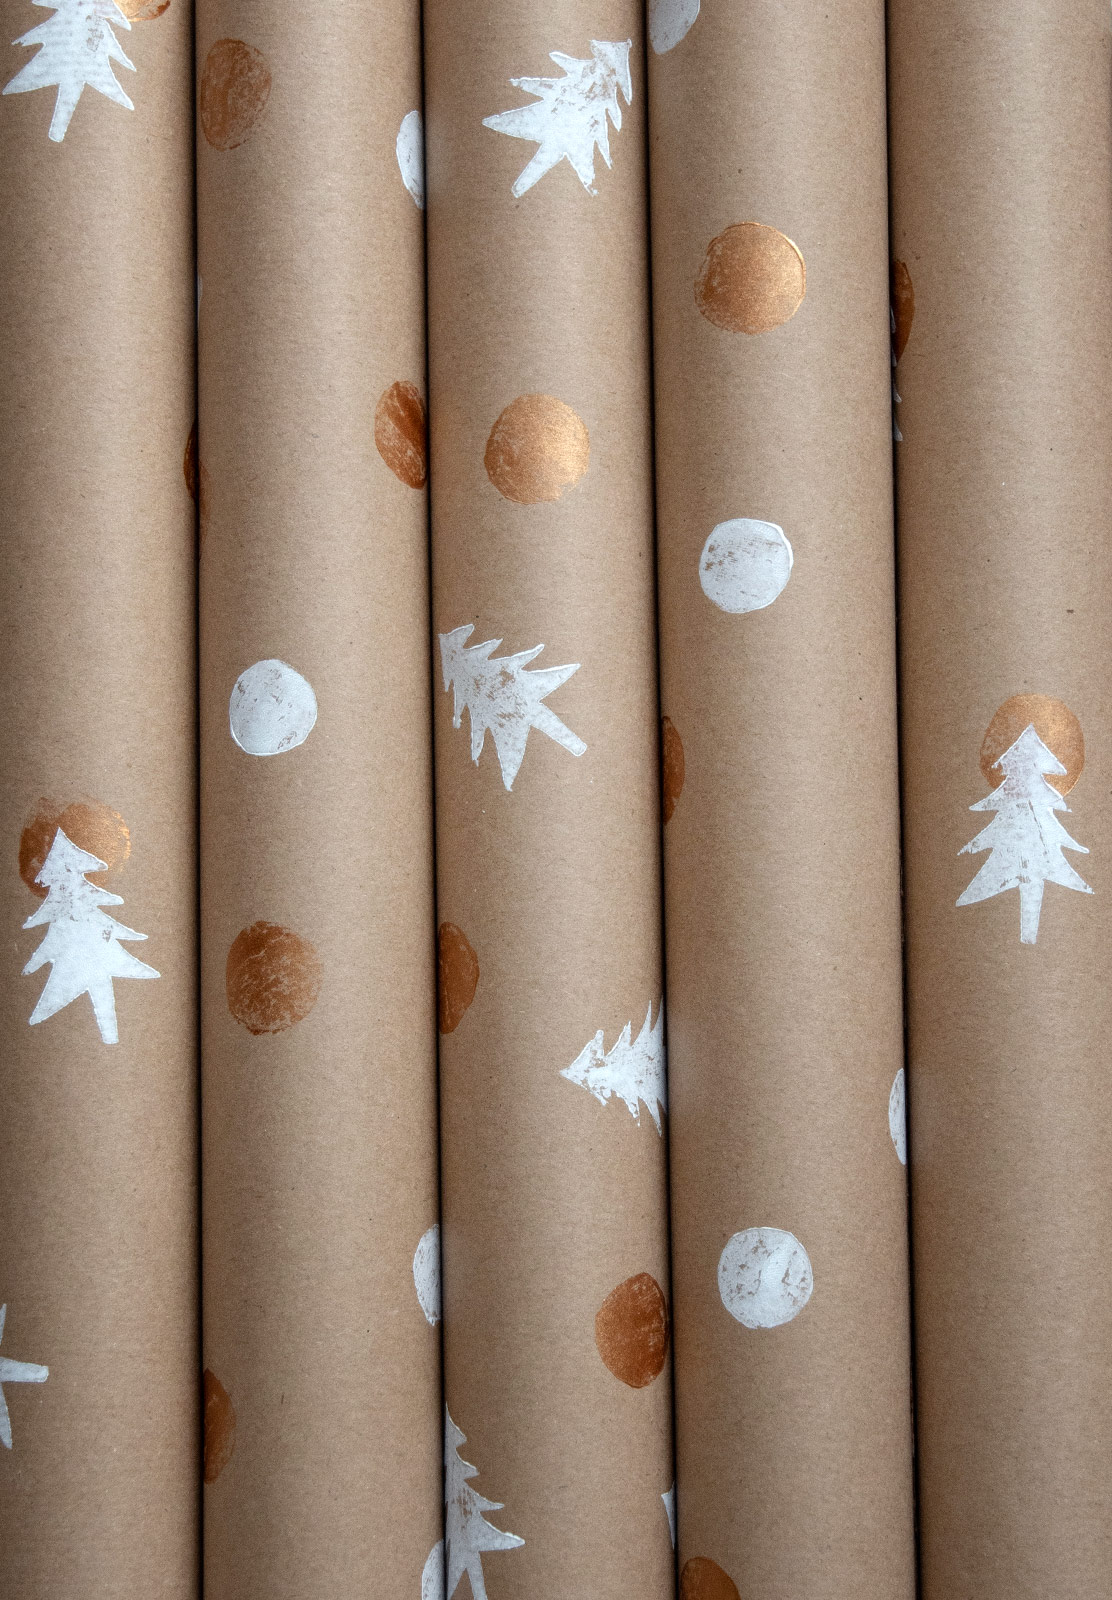 Rolls of Christmas wrap